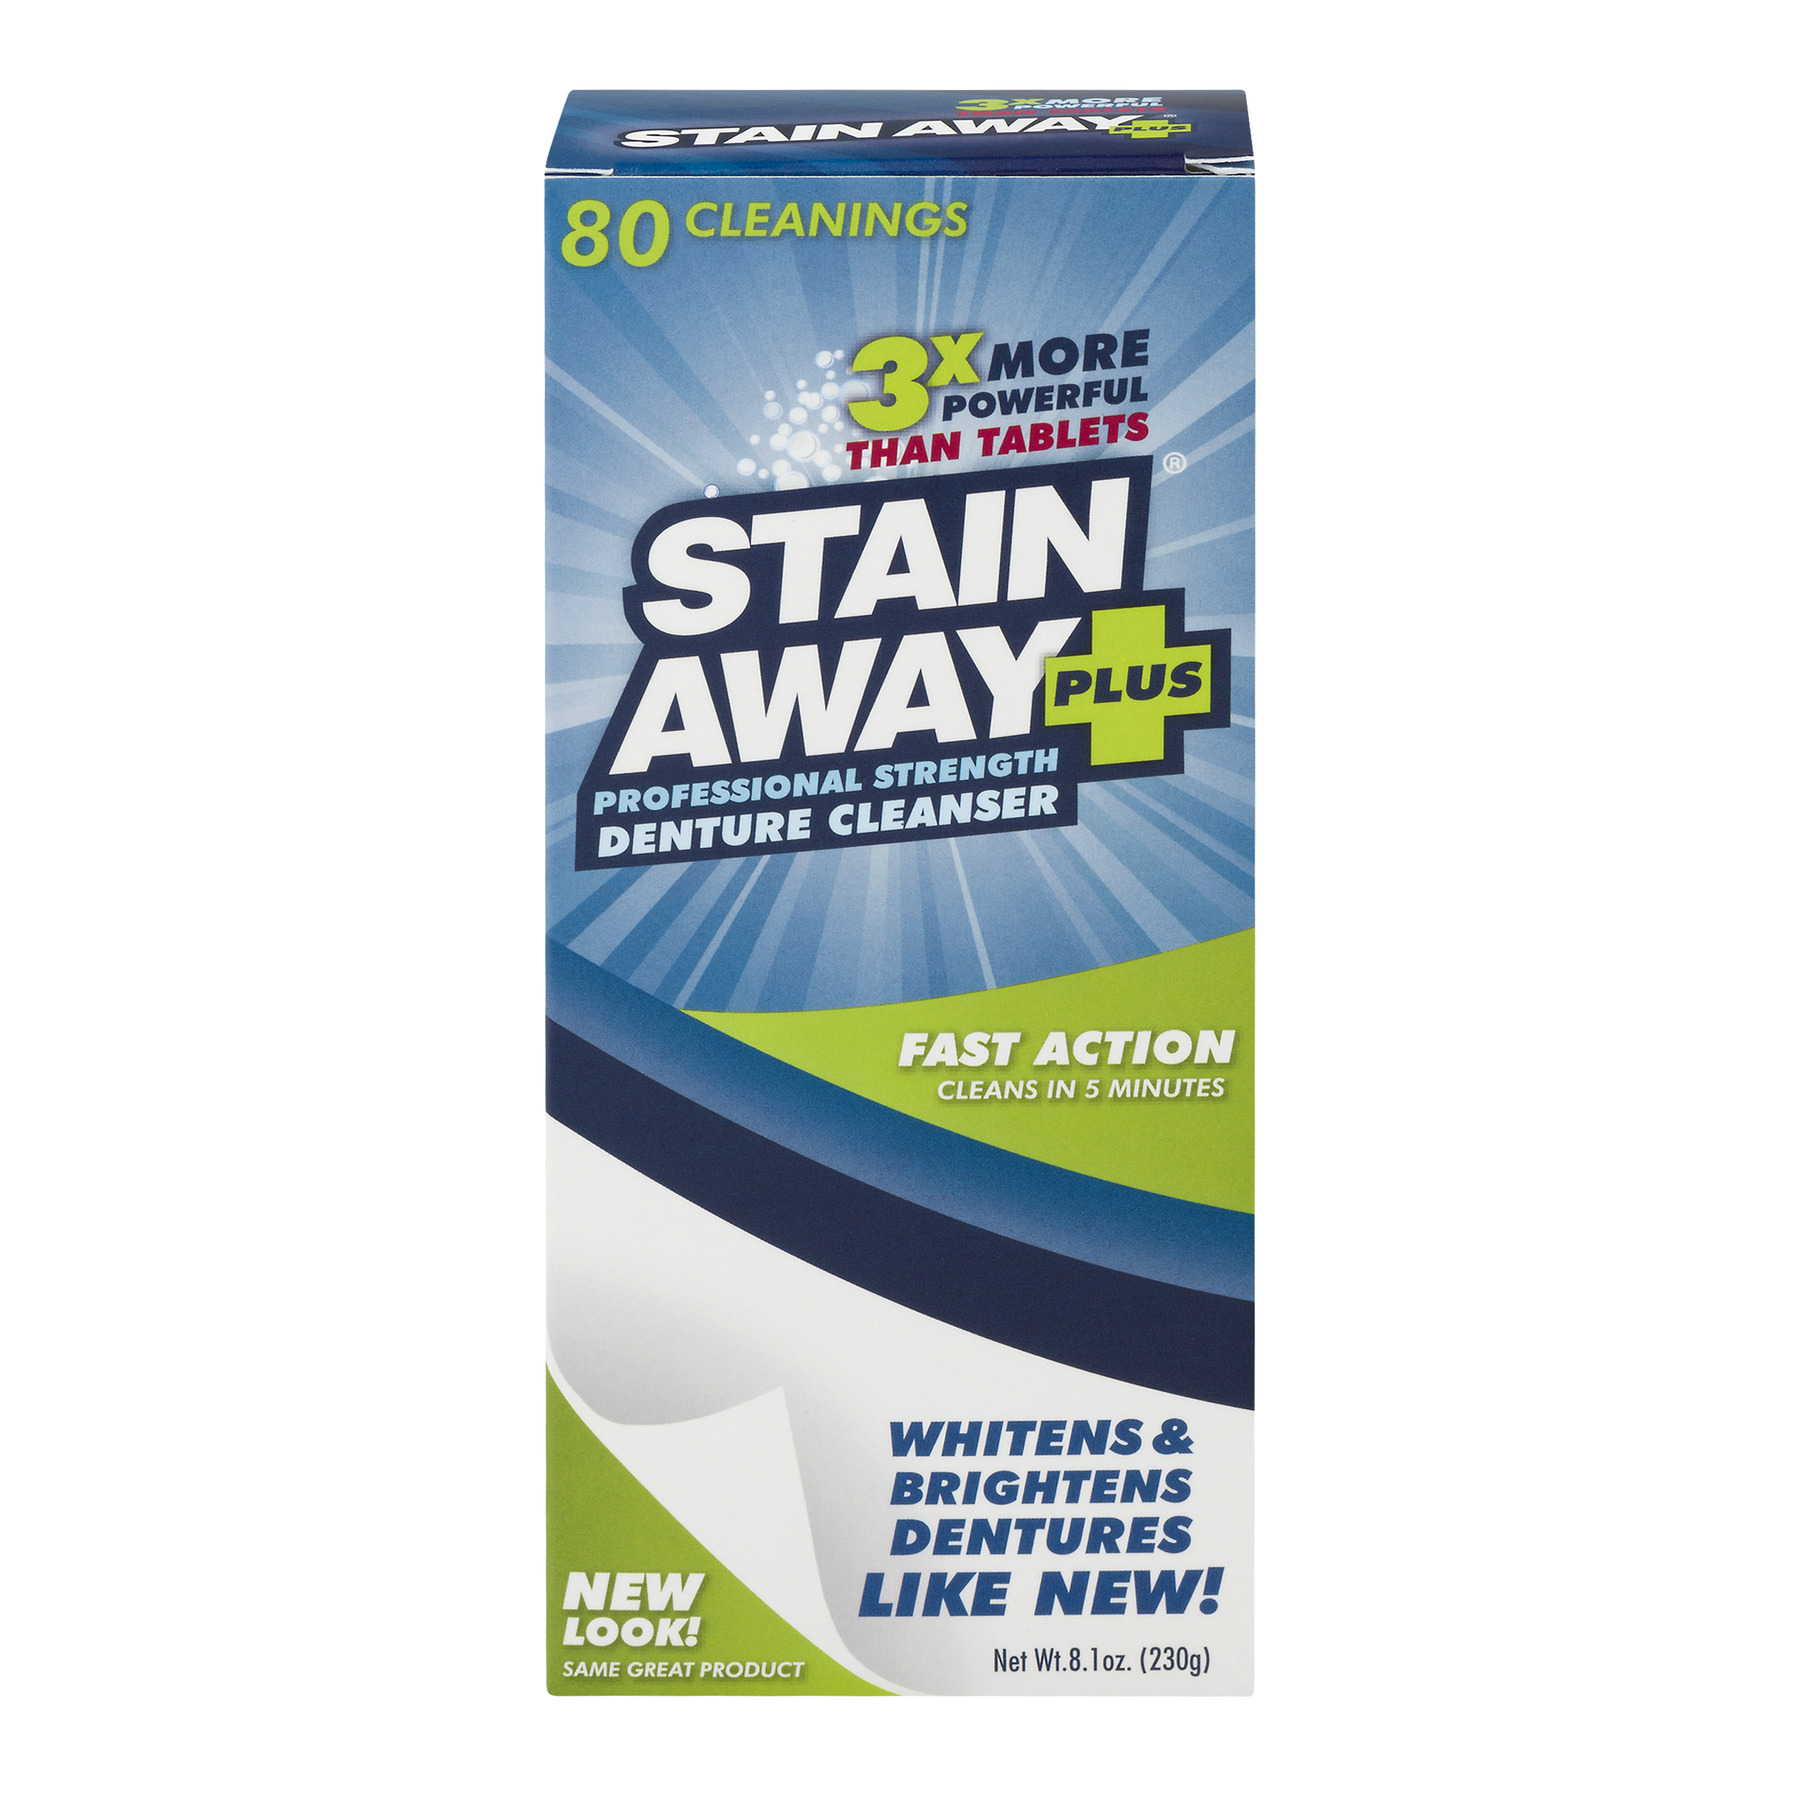 Stain Away Plus Professional Strength Denture Cleanser, 8.1 OZ